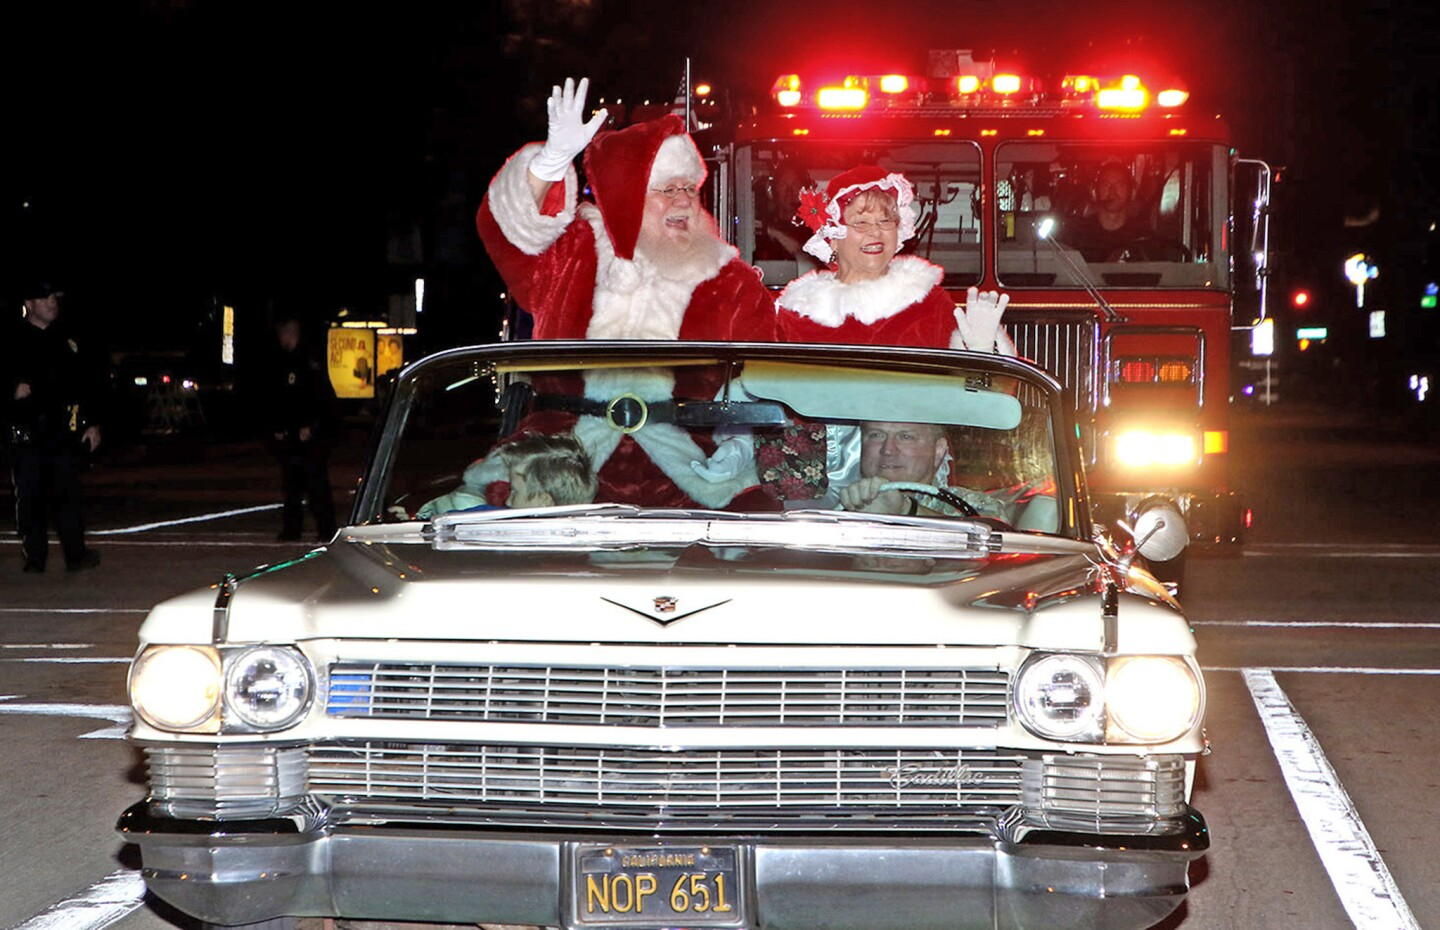 Santa and Mrs Claus arrive at Burbank City Hall via a classic Cadillac driven by Richard Bertain Jr. (Photo by Ross A Benson)